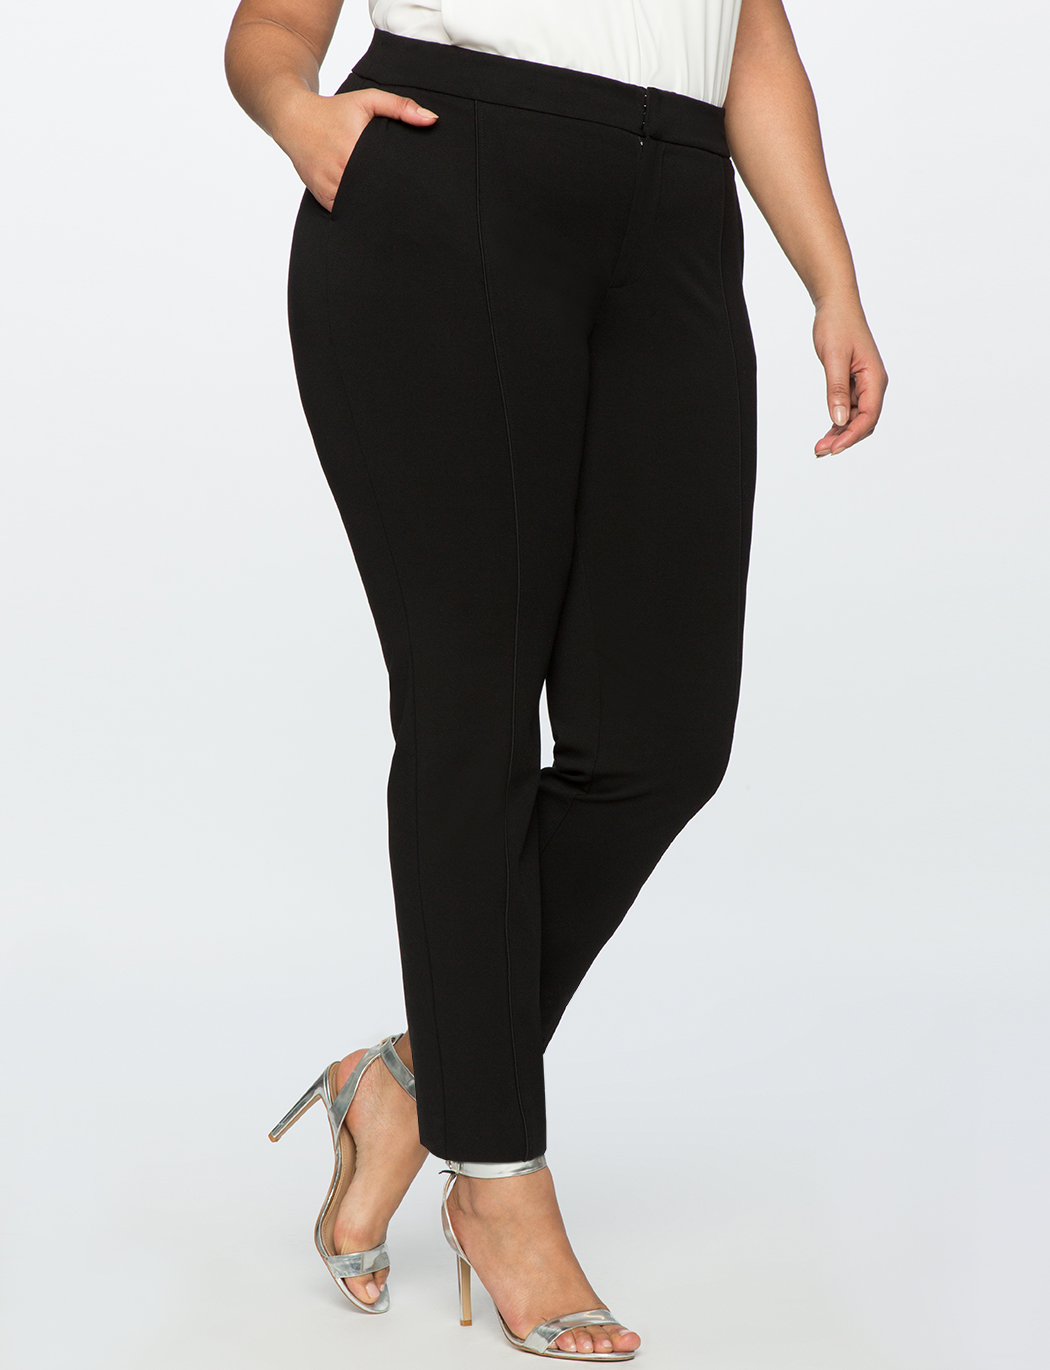 9-to-5 Stretch Pintuck Pant